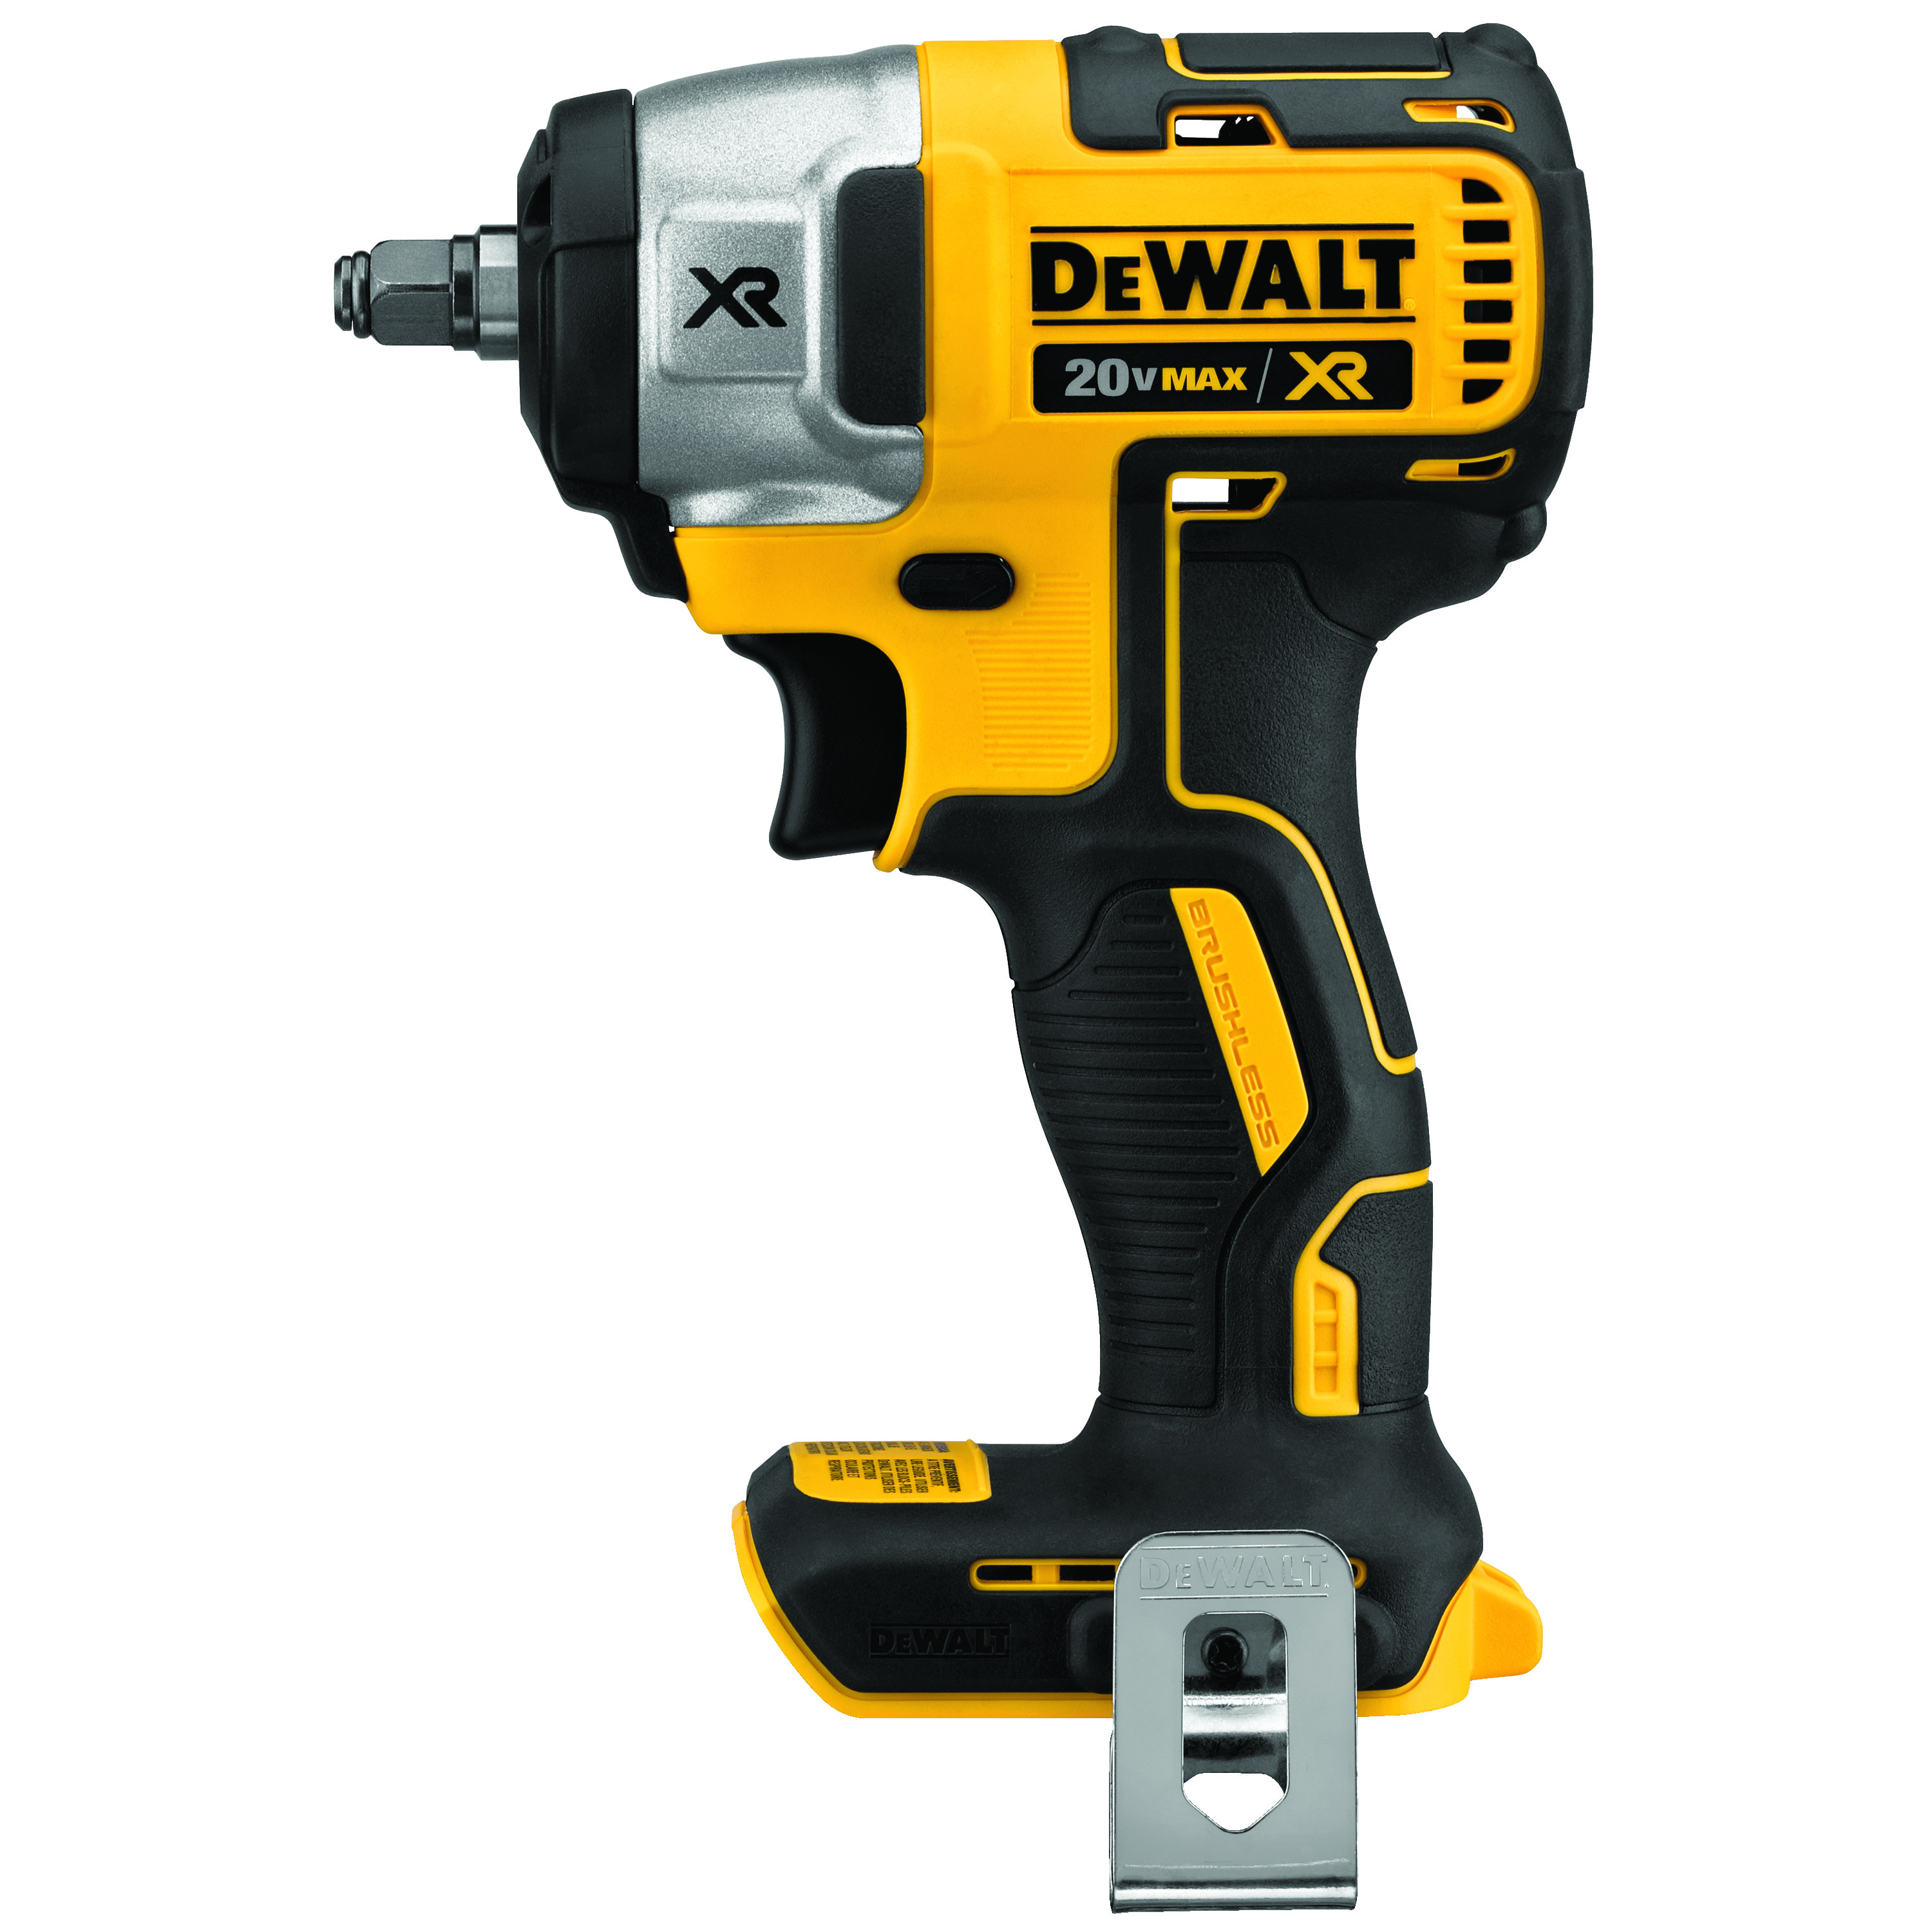 DeWALT® 20V MAX* MATRIX™ XR™ DCF890B Cordless Impact Wrench, 3/8 in Straight Drive, 2700 bpm, 150 ft-lb Torque, 20 V, 5-1/2 in OAL, Tool Only